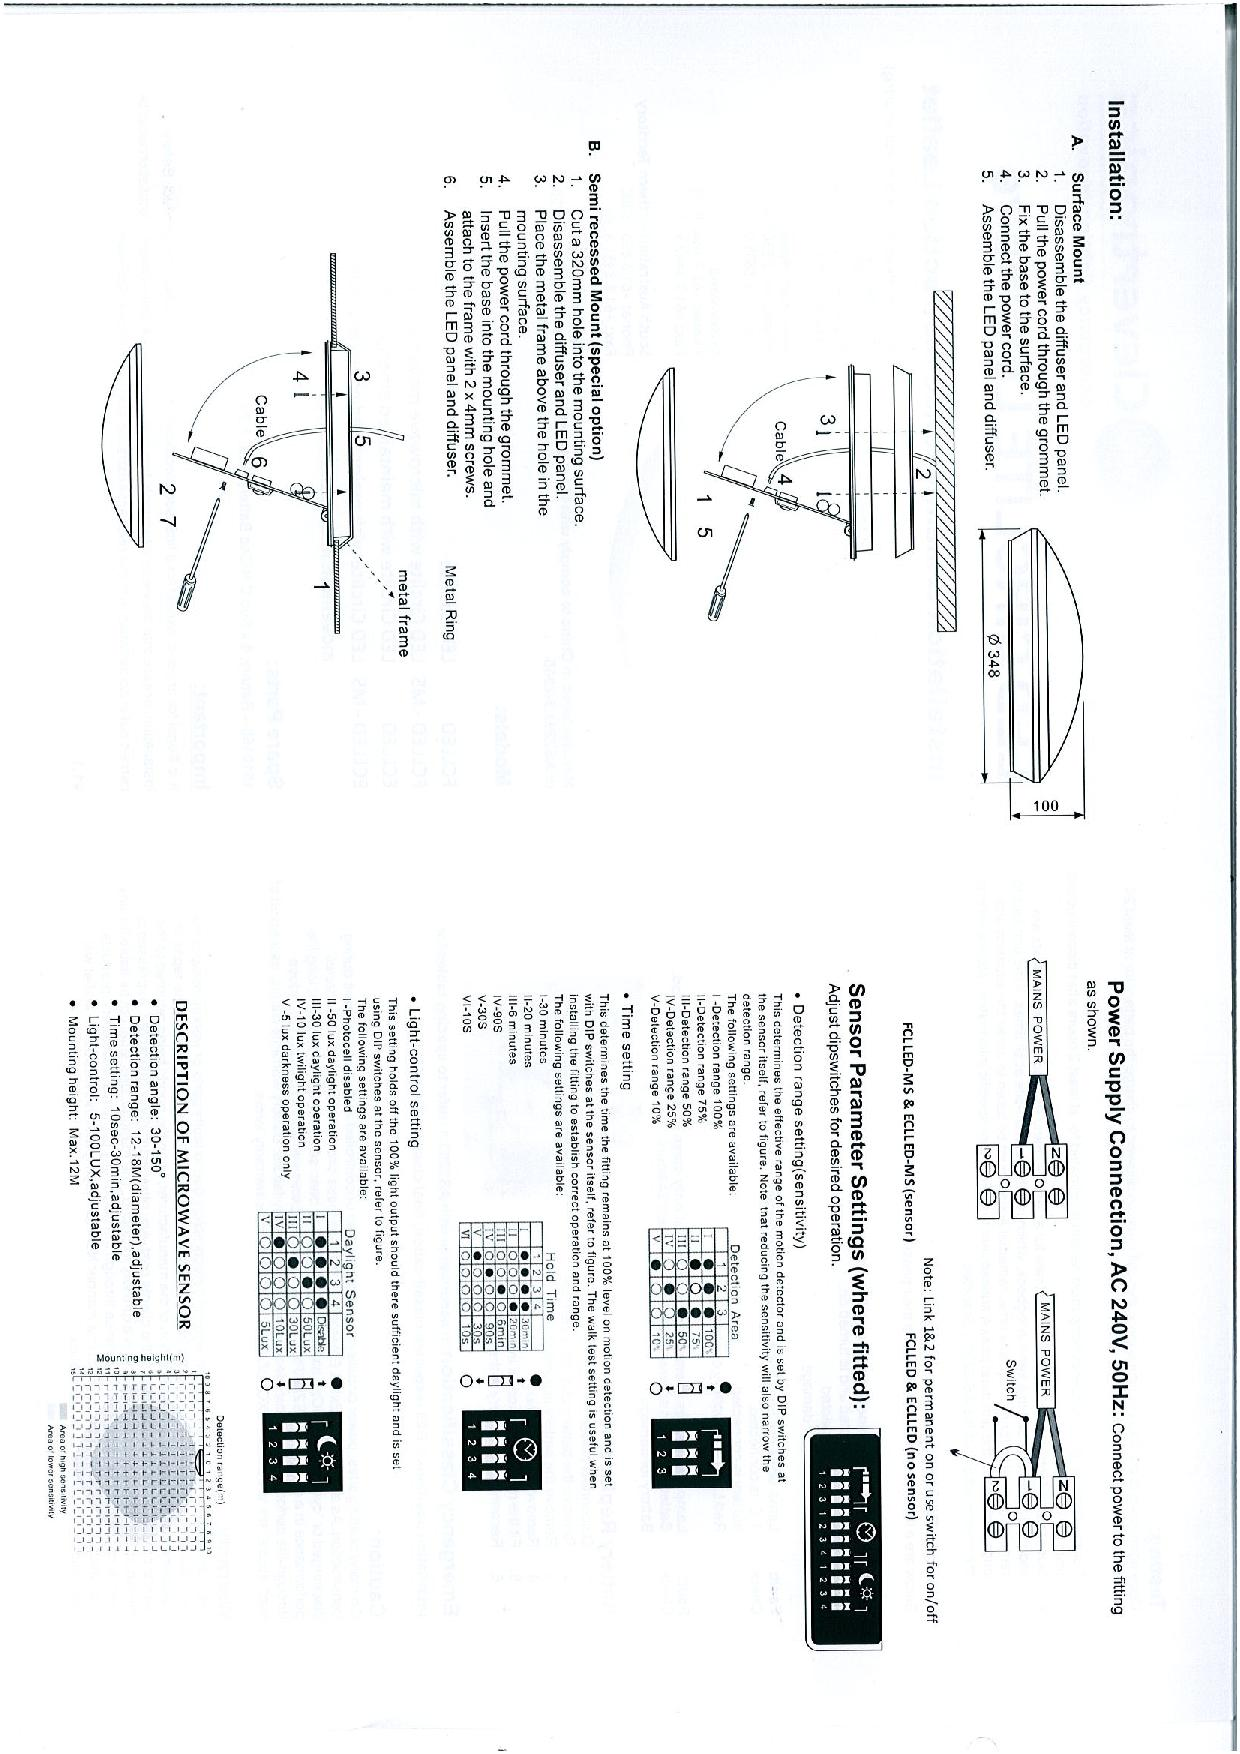 Mini Cooper Ac Wiring Diagrams moreover Ford F53 Motorhome Chassis Wiring Diagram further 1992 Cadillac Eldorado Wiring Diagram as well Chevrolet Vacuum Line Diagram likewise P 0900c152801c8479. on 1977 1979 cadillac fleetwood wiring